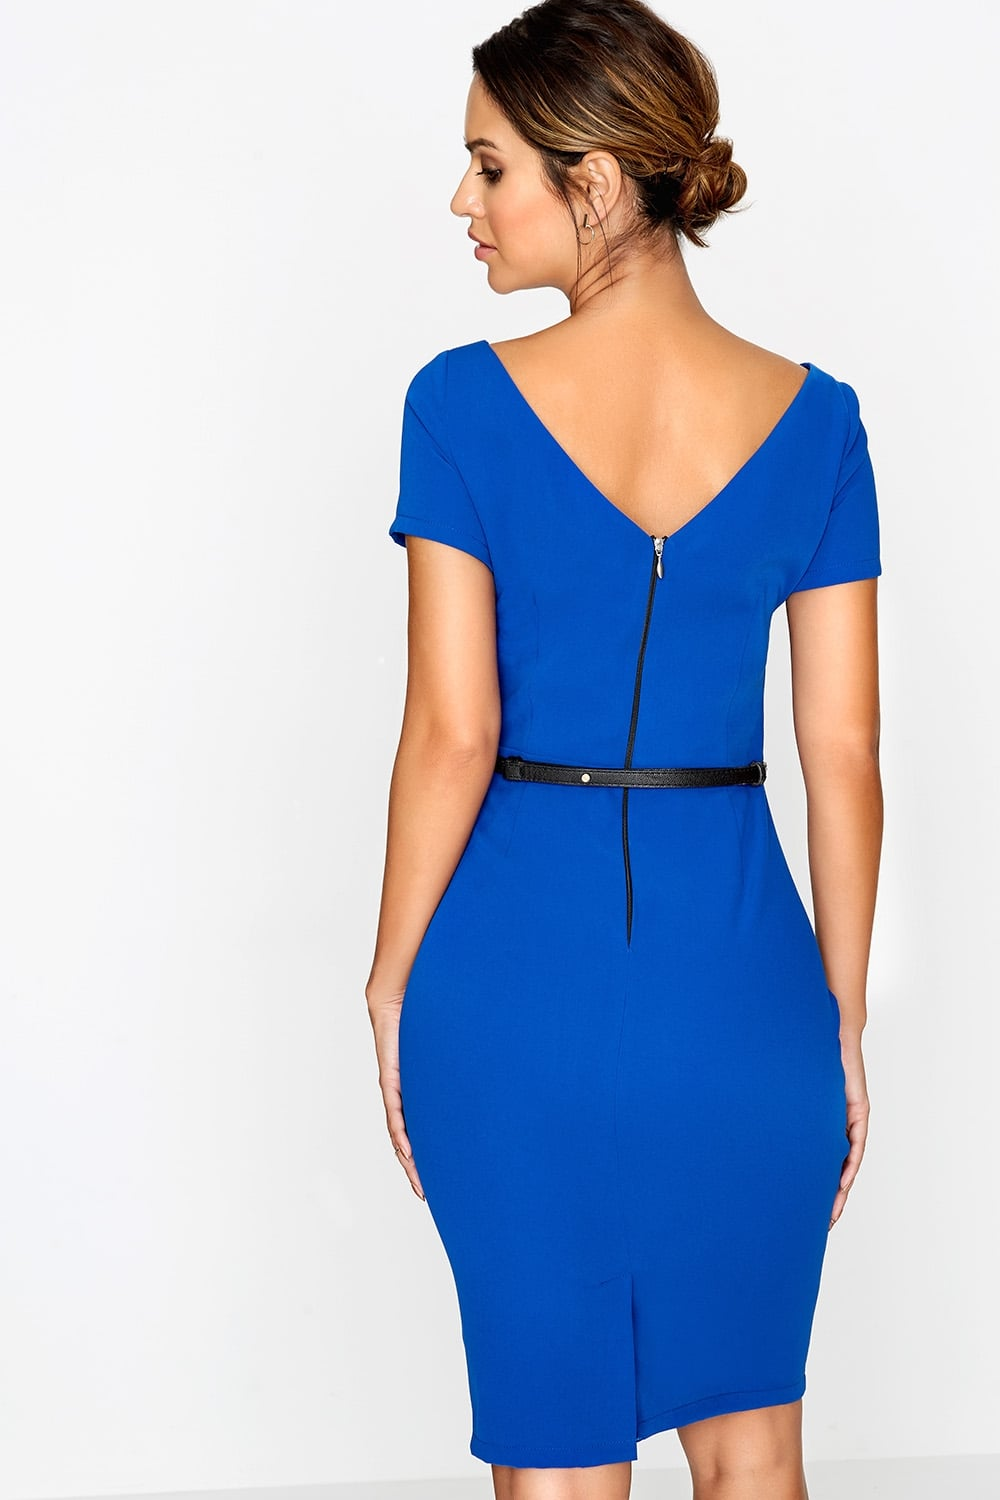 Suit pear blue bodycon dresses to buy where young